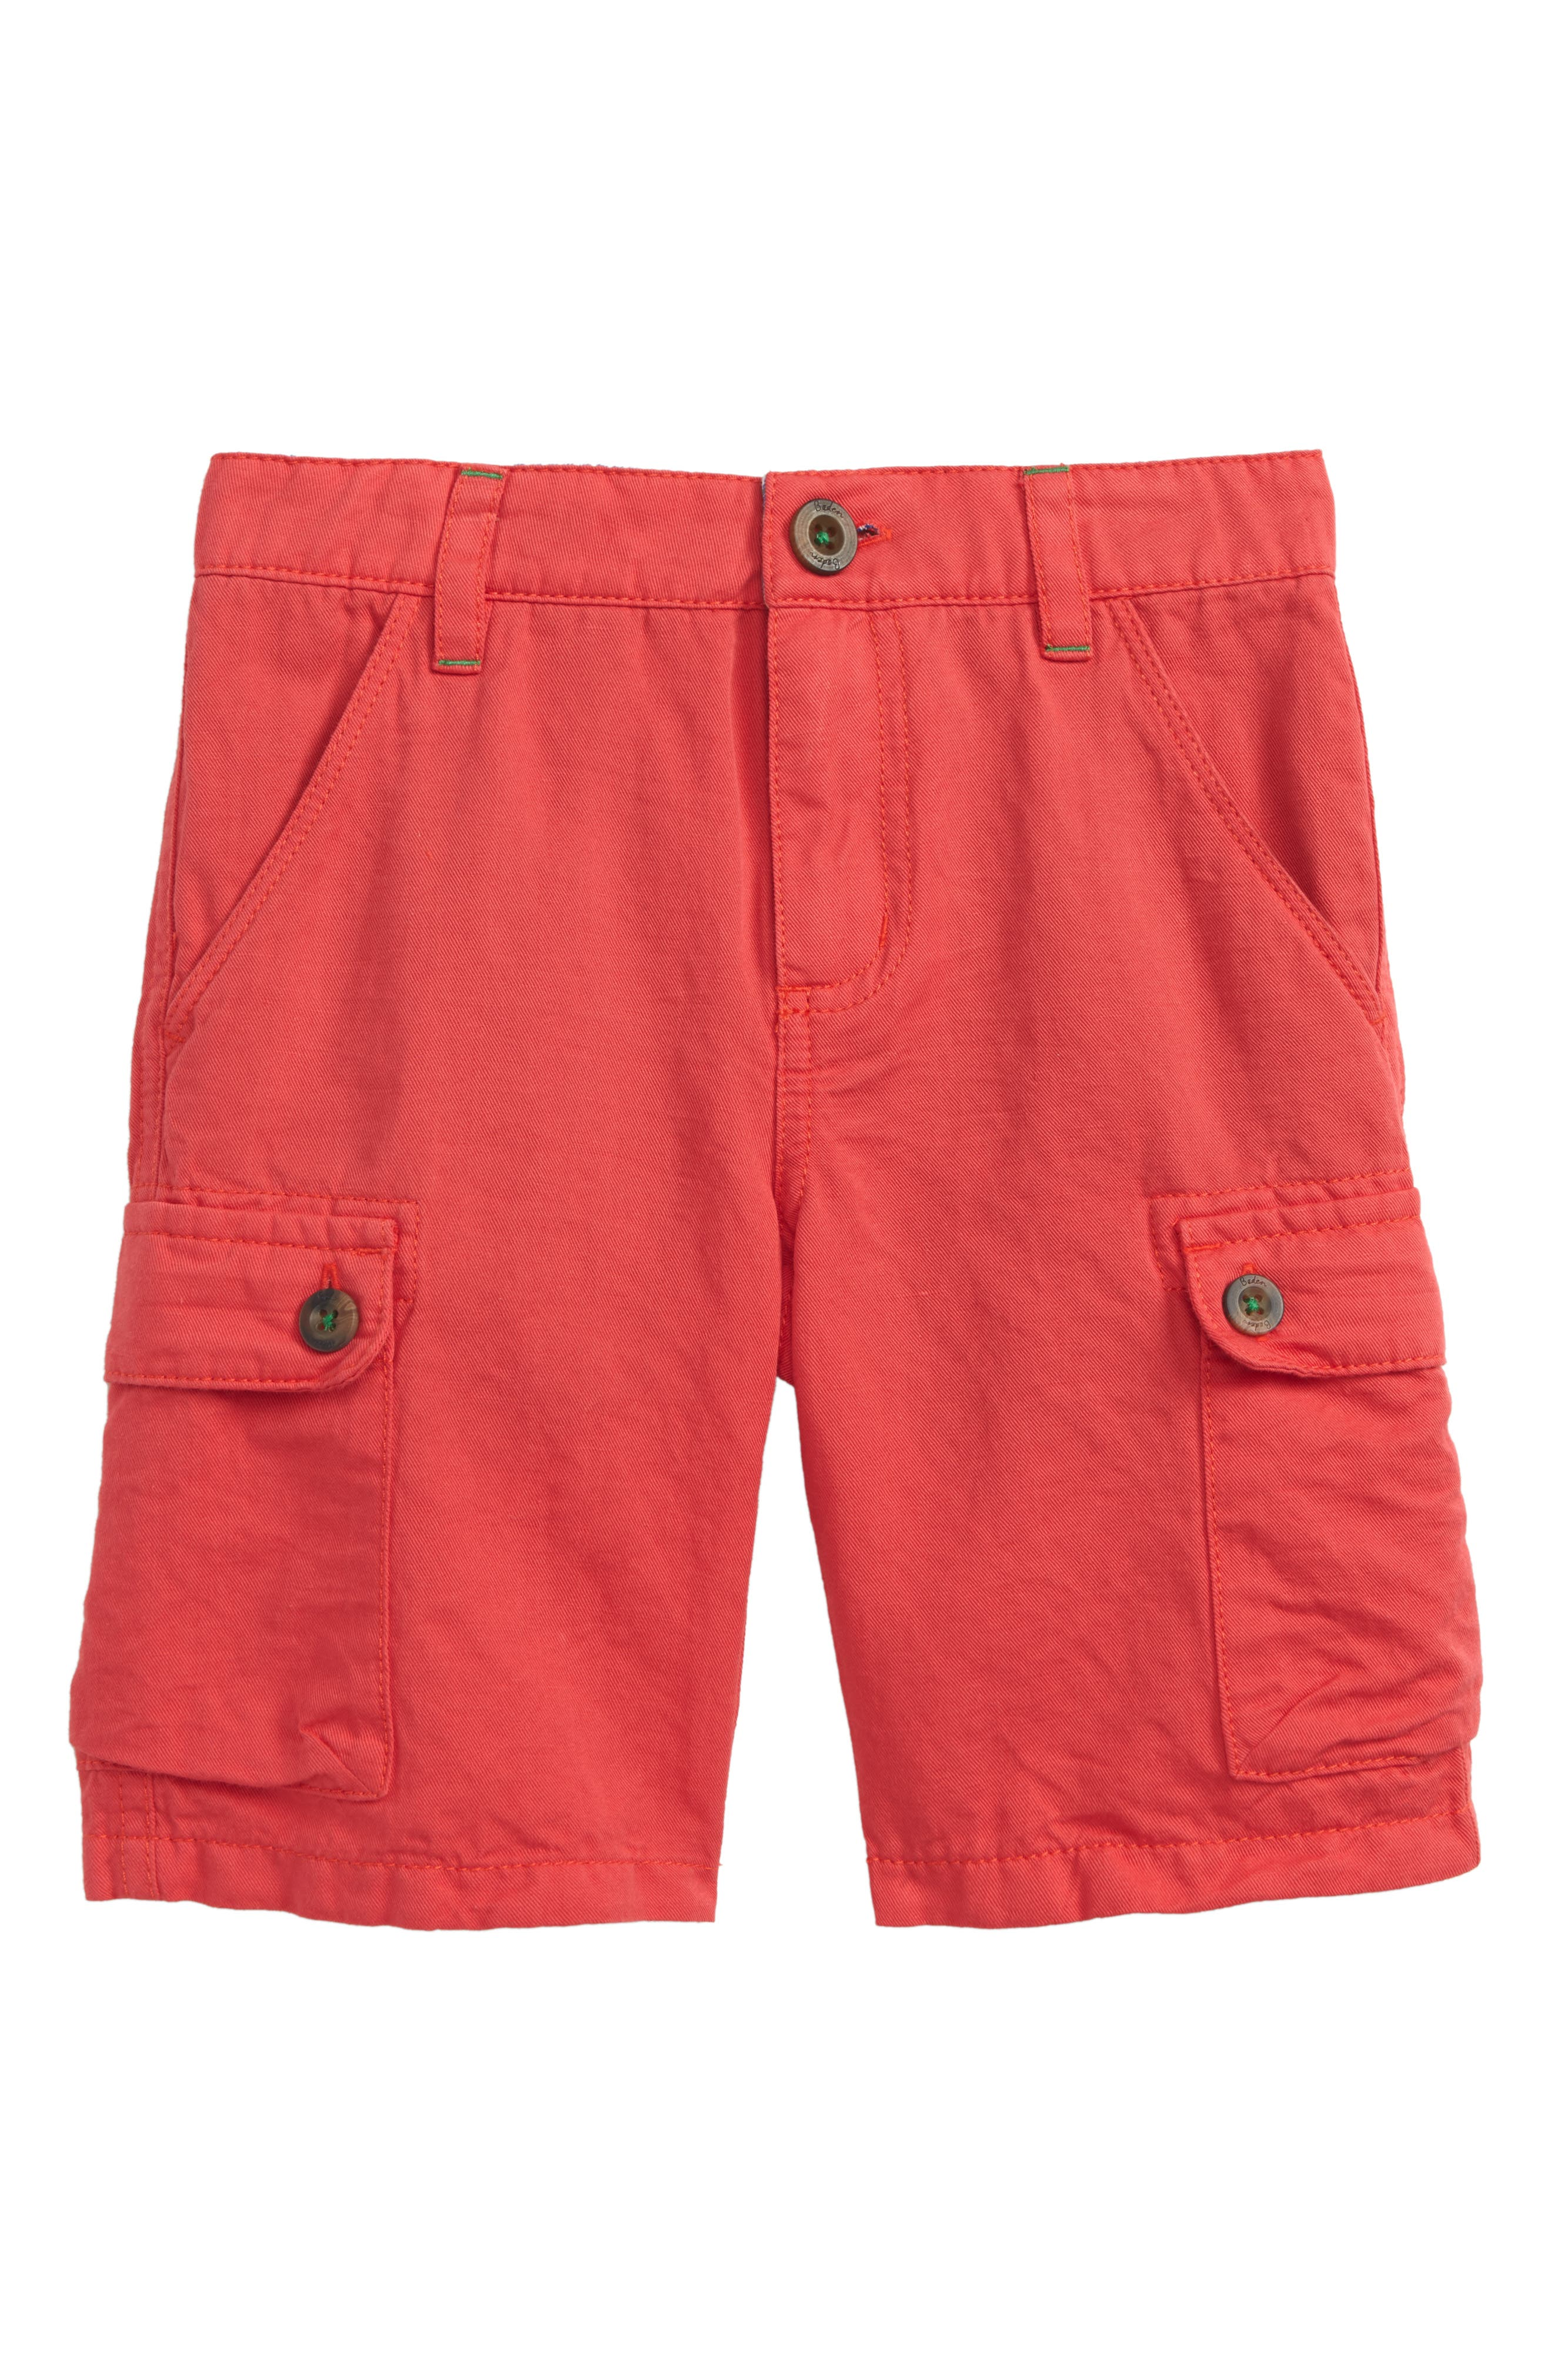 Mini Boden Summer Cargo Shorts (Toddler Boys, Little Boys & Big Boys)